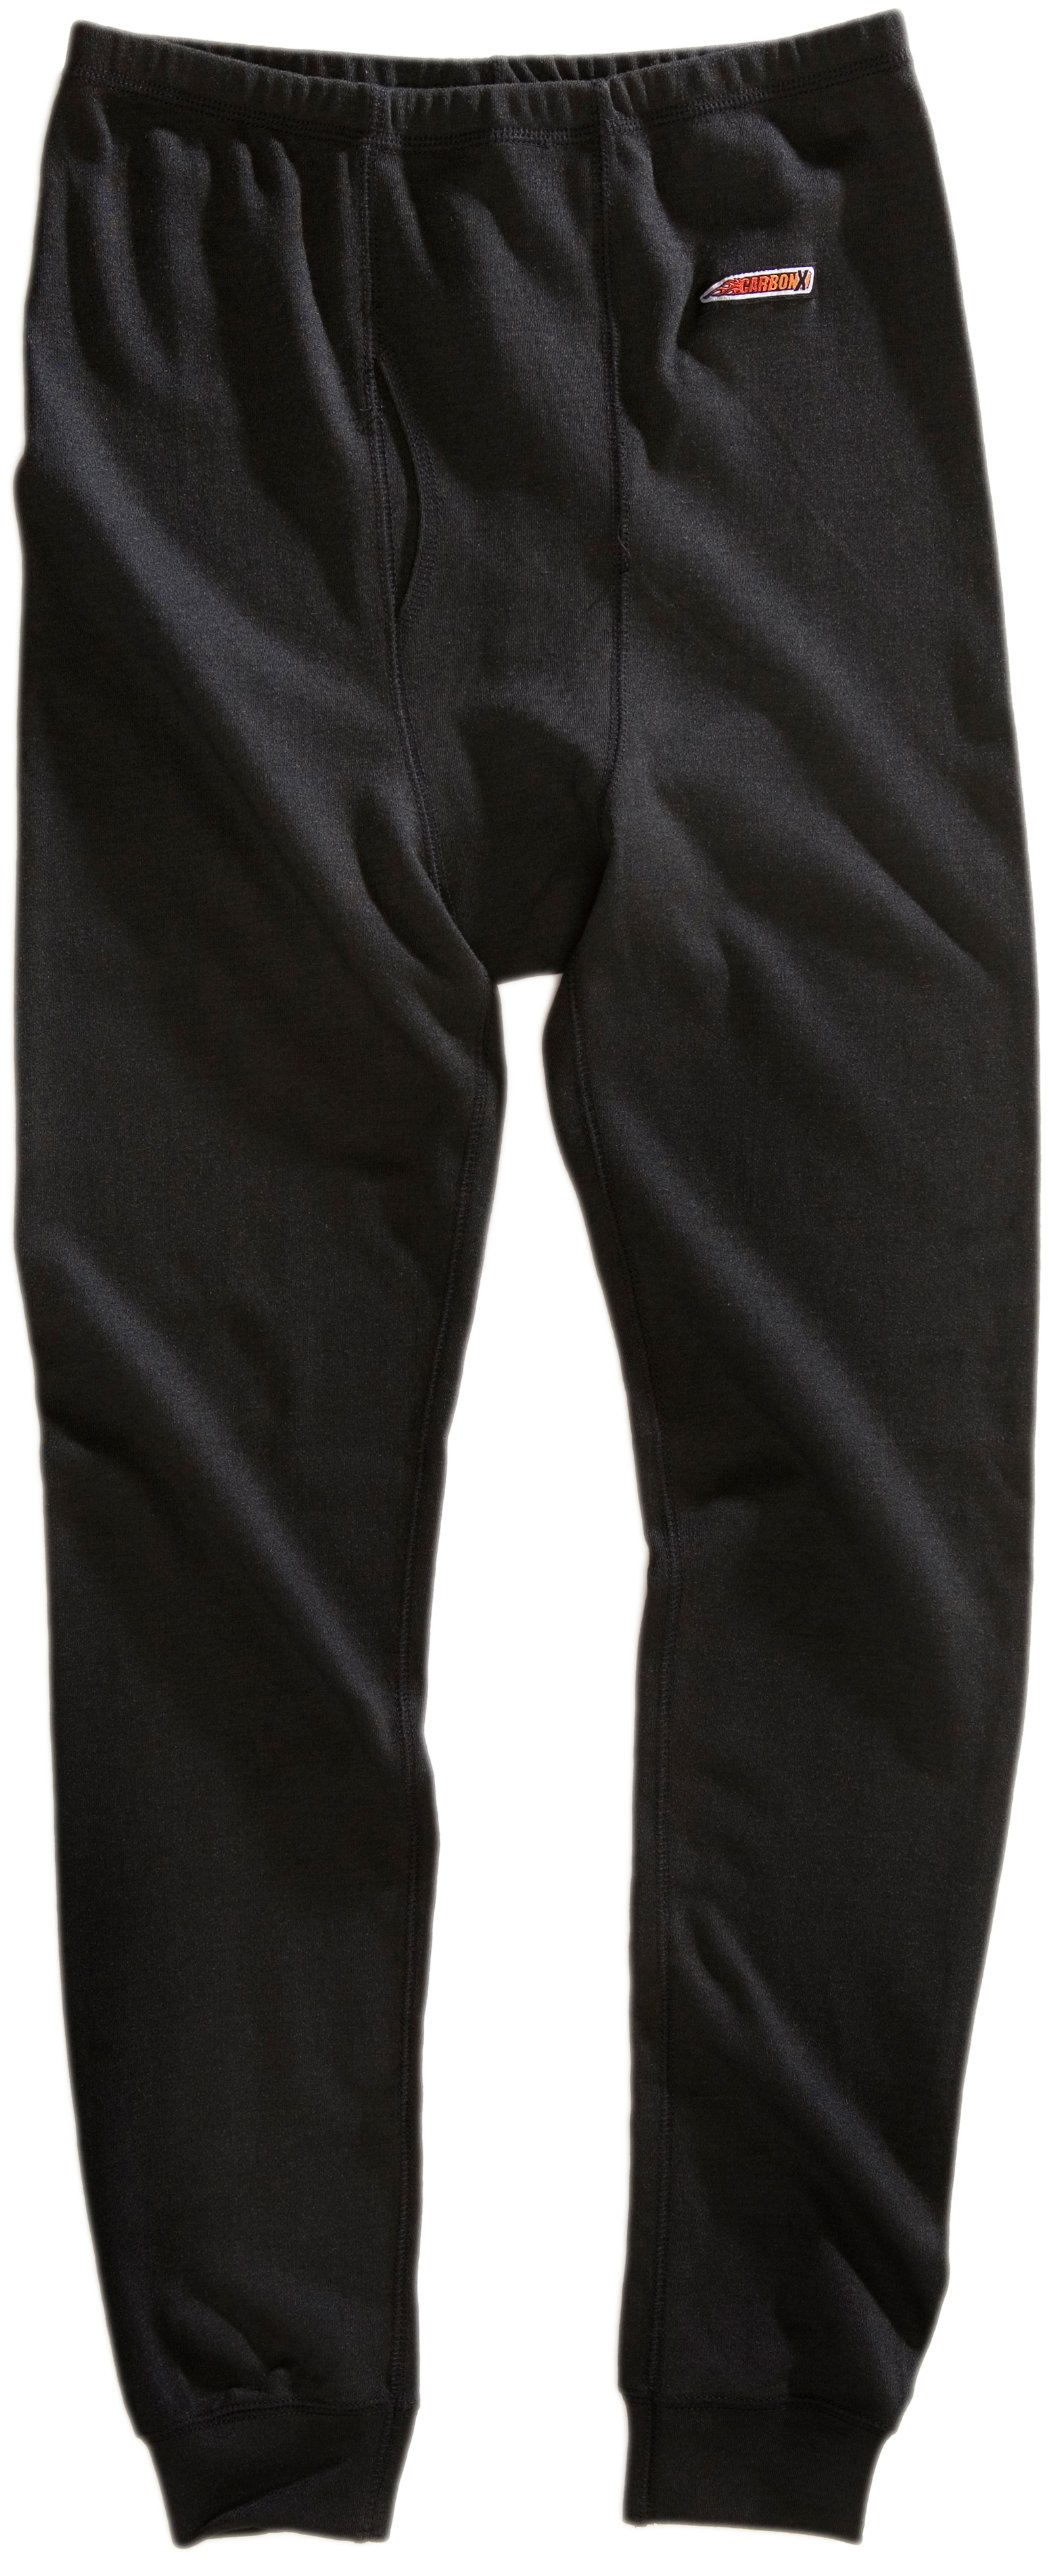 Chicago Protective Apparel Knit Carbon-X Underwear, ''Long John'' Style Pant - XL